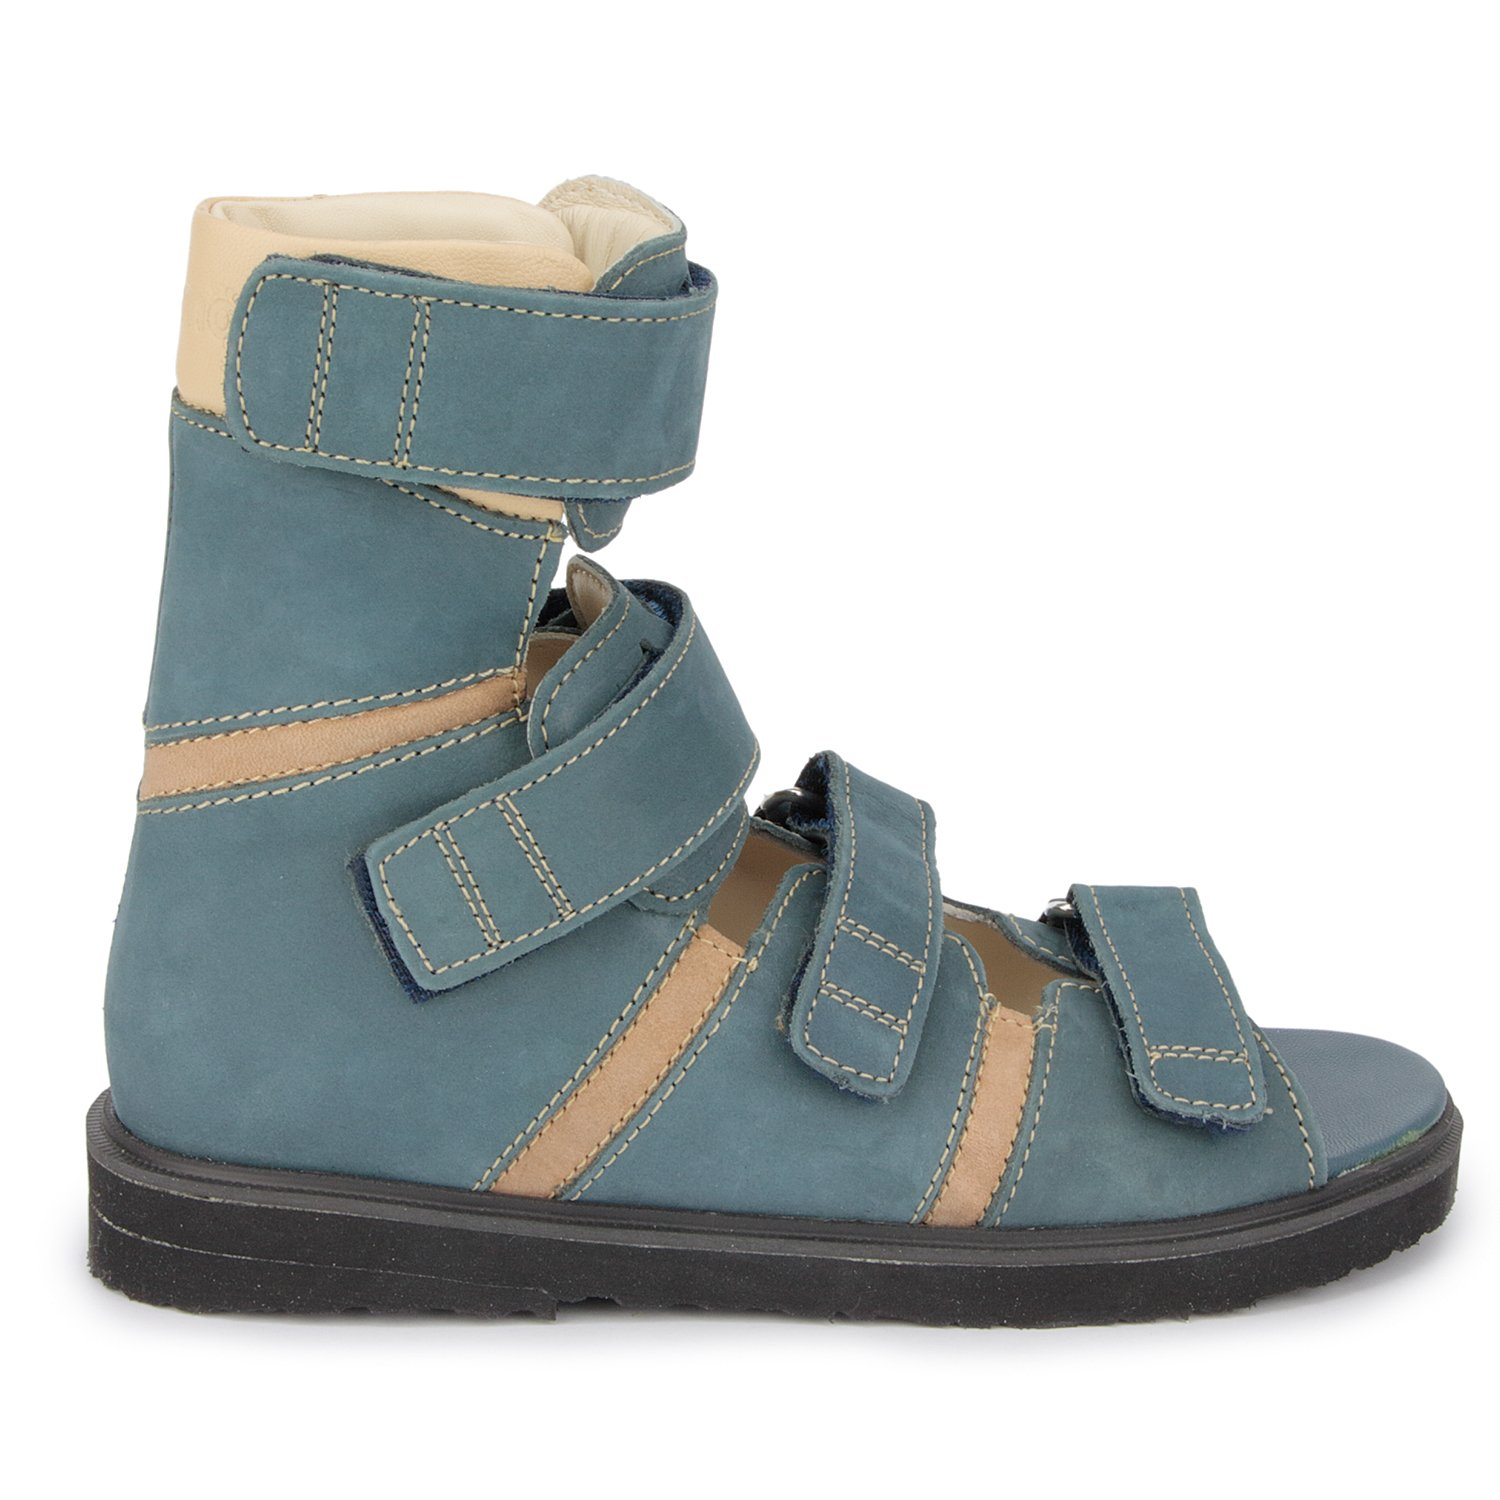 Memo Basic 1CH Suede CP Kids AFO Brace Sandal, 12.5 Little Kid M (30) by Memo (Image #5)